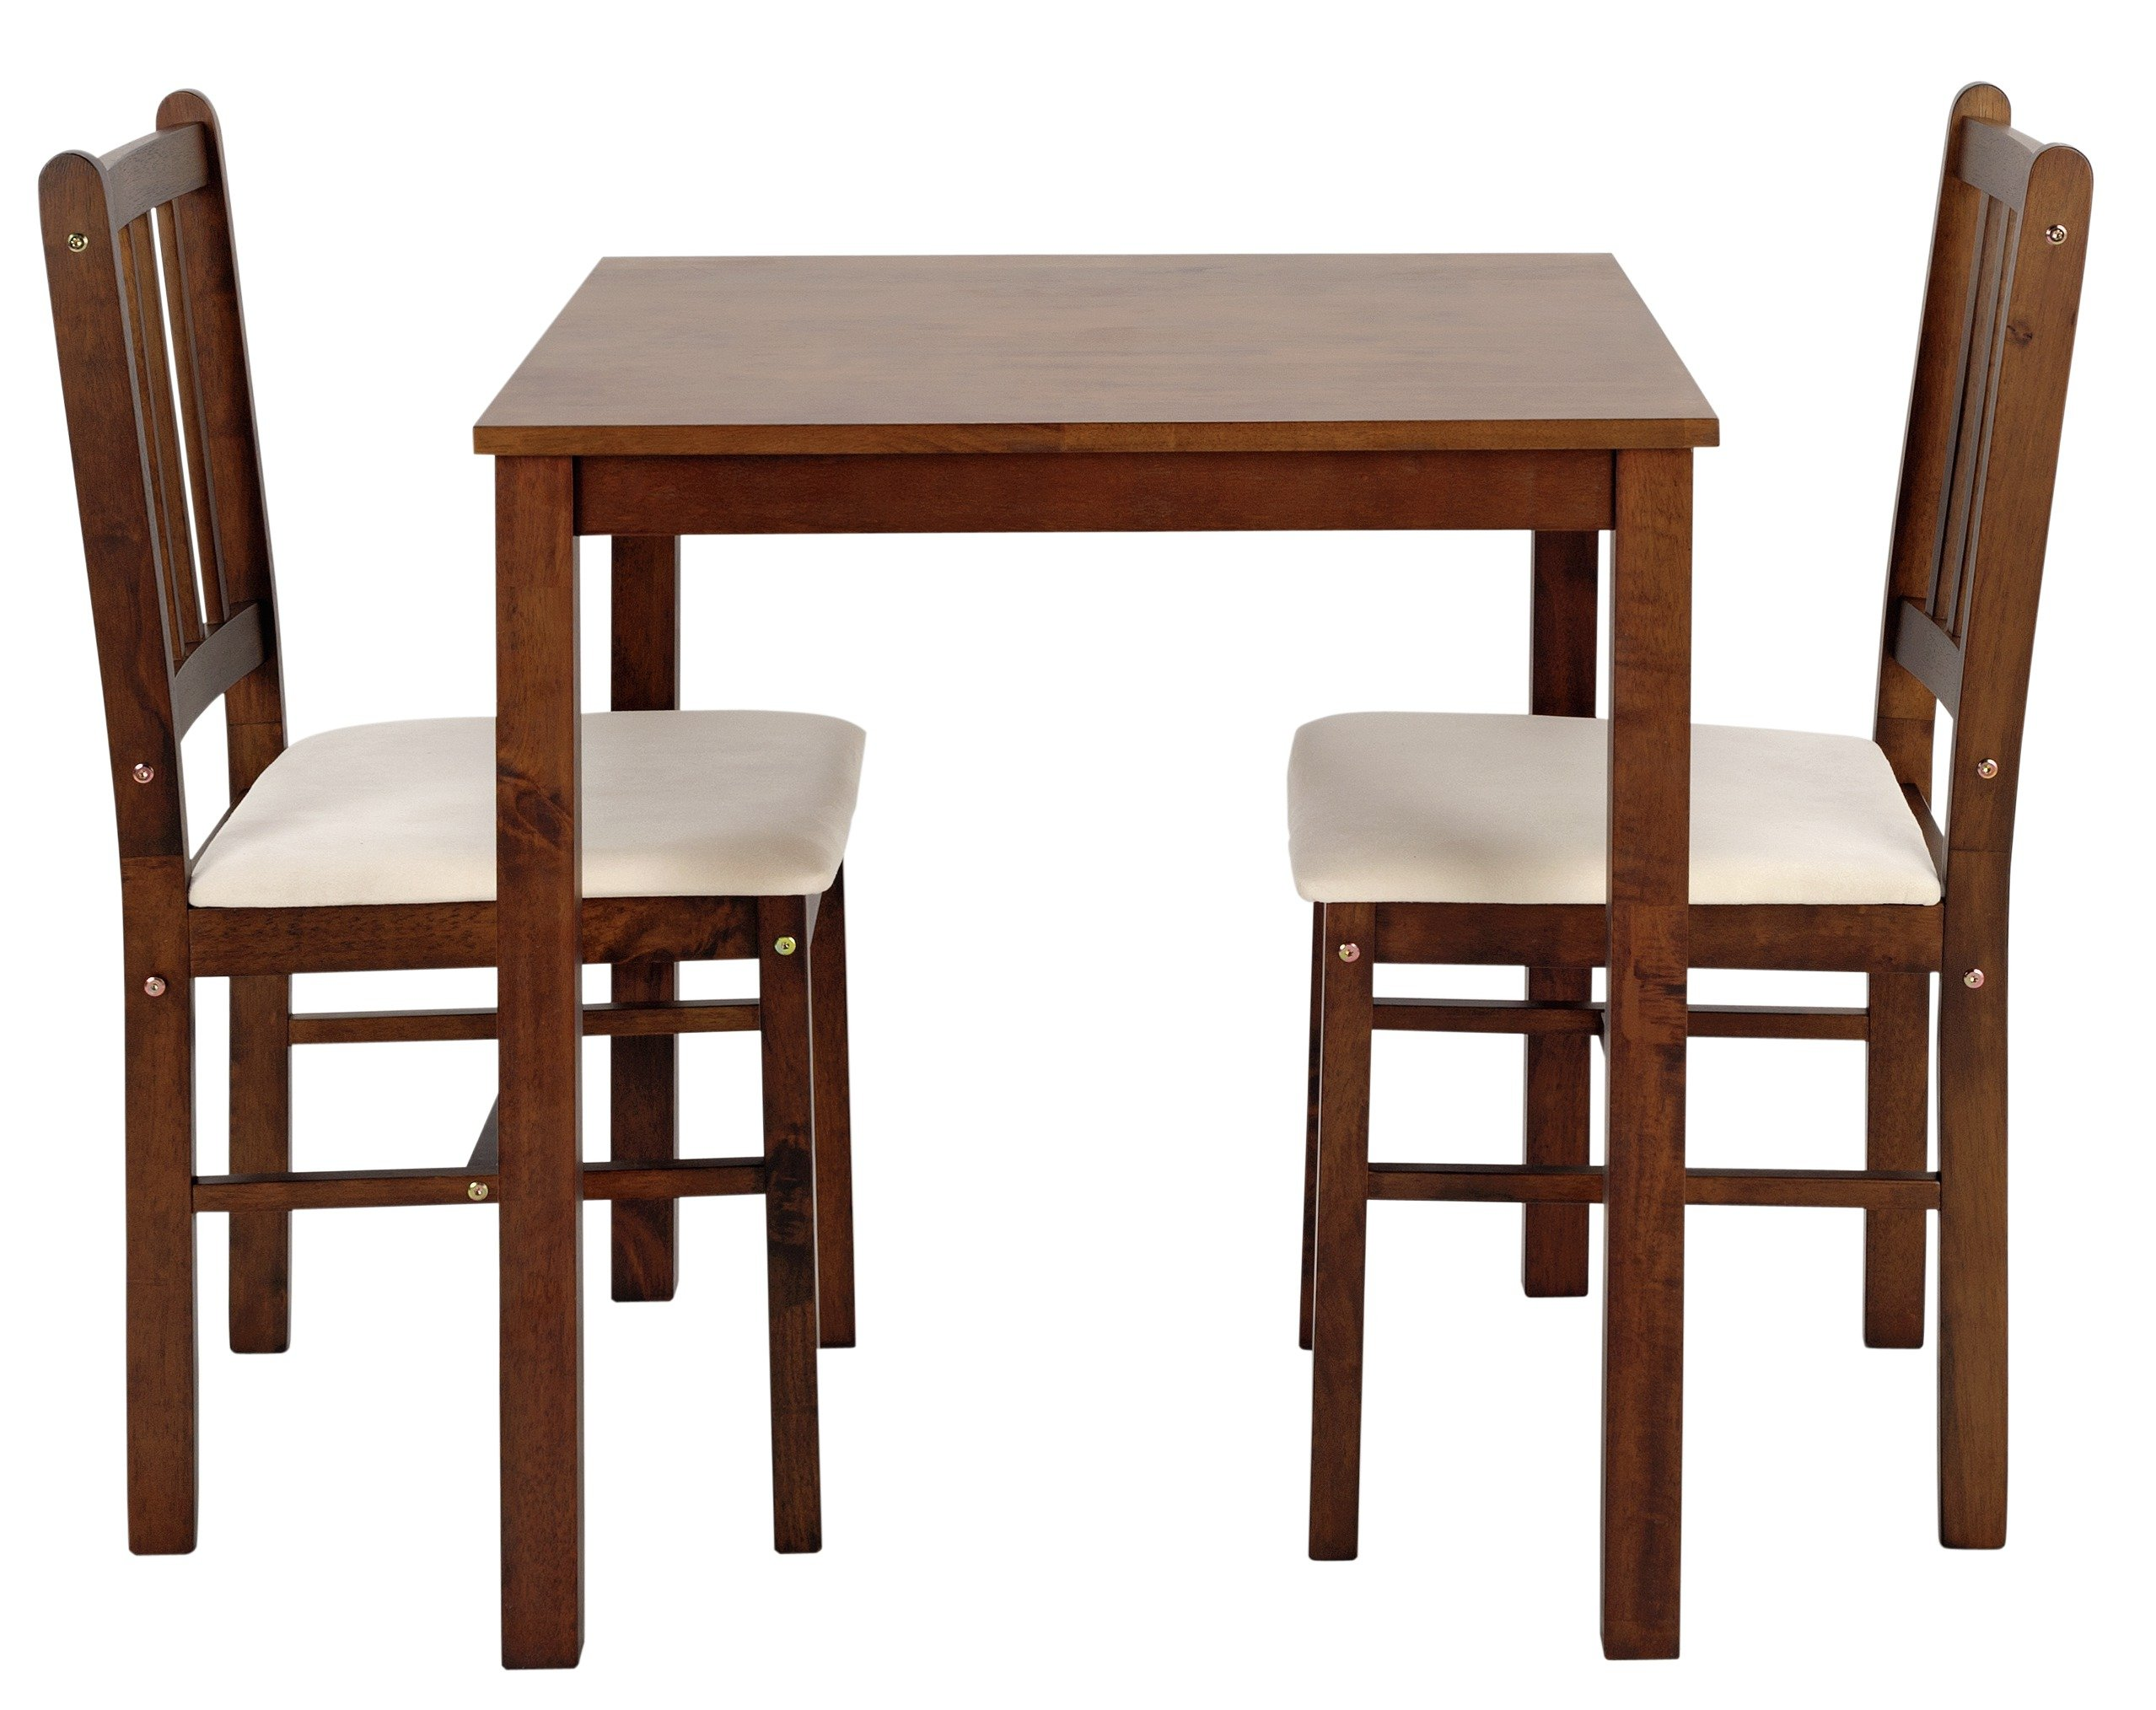 beach chairs uk argos zuo desk chair sale on home kendall solid walnut dining table and 2